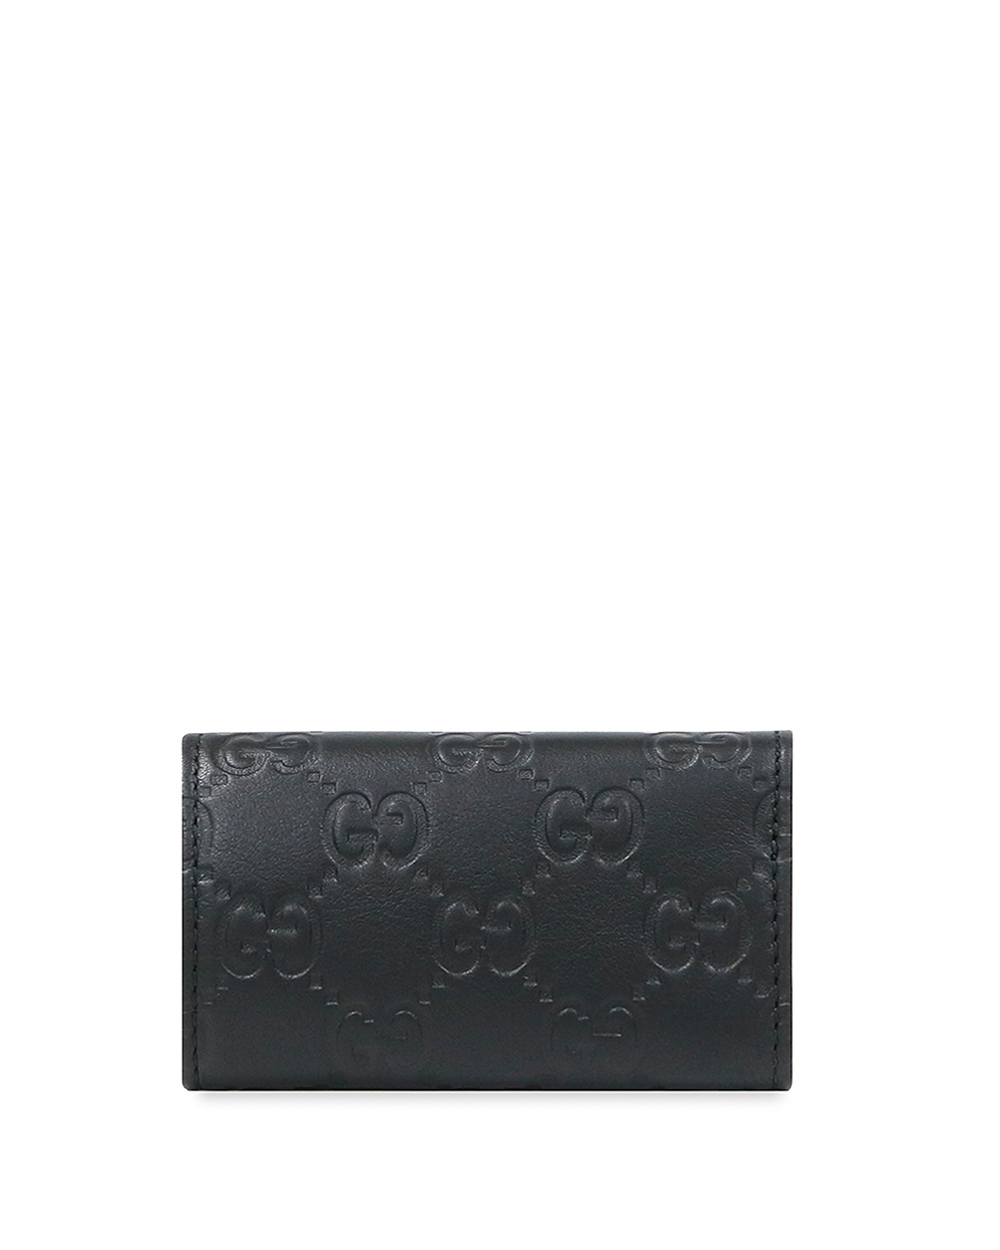 Double G Plate Leather 6 Key Case 2